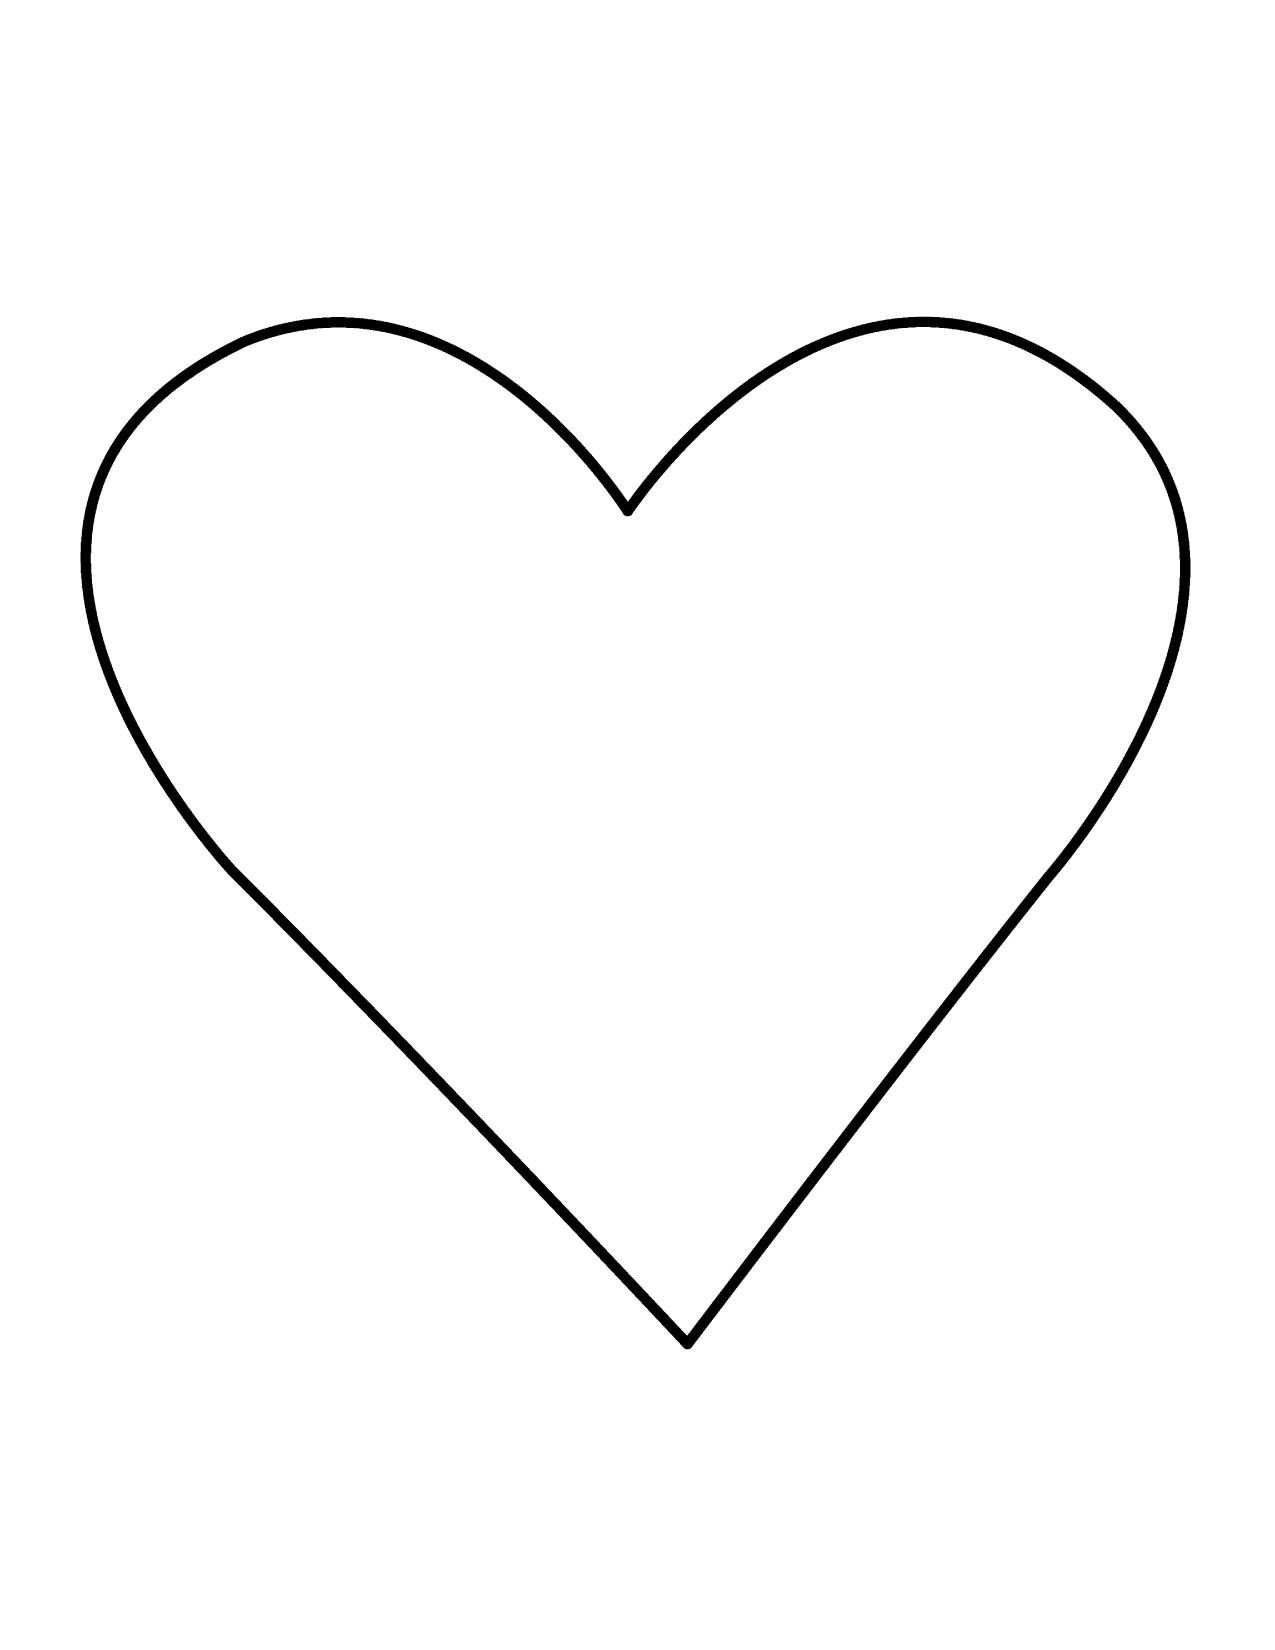 hight resolution of heart black and white hearts heart clipart black and white 3 clipartix